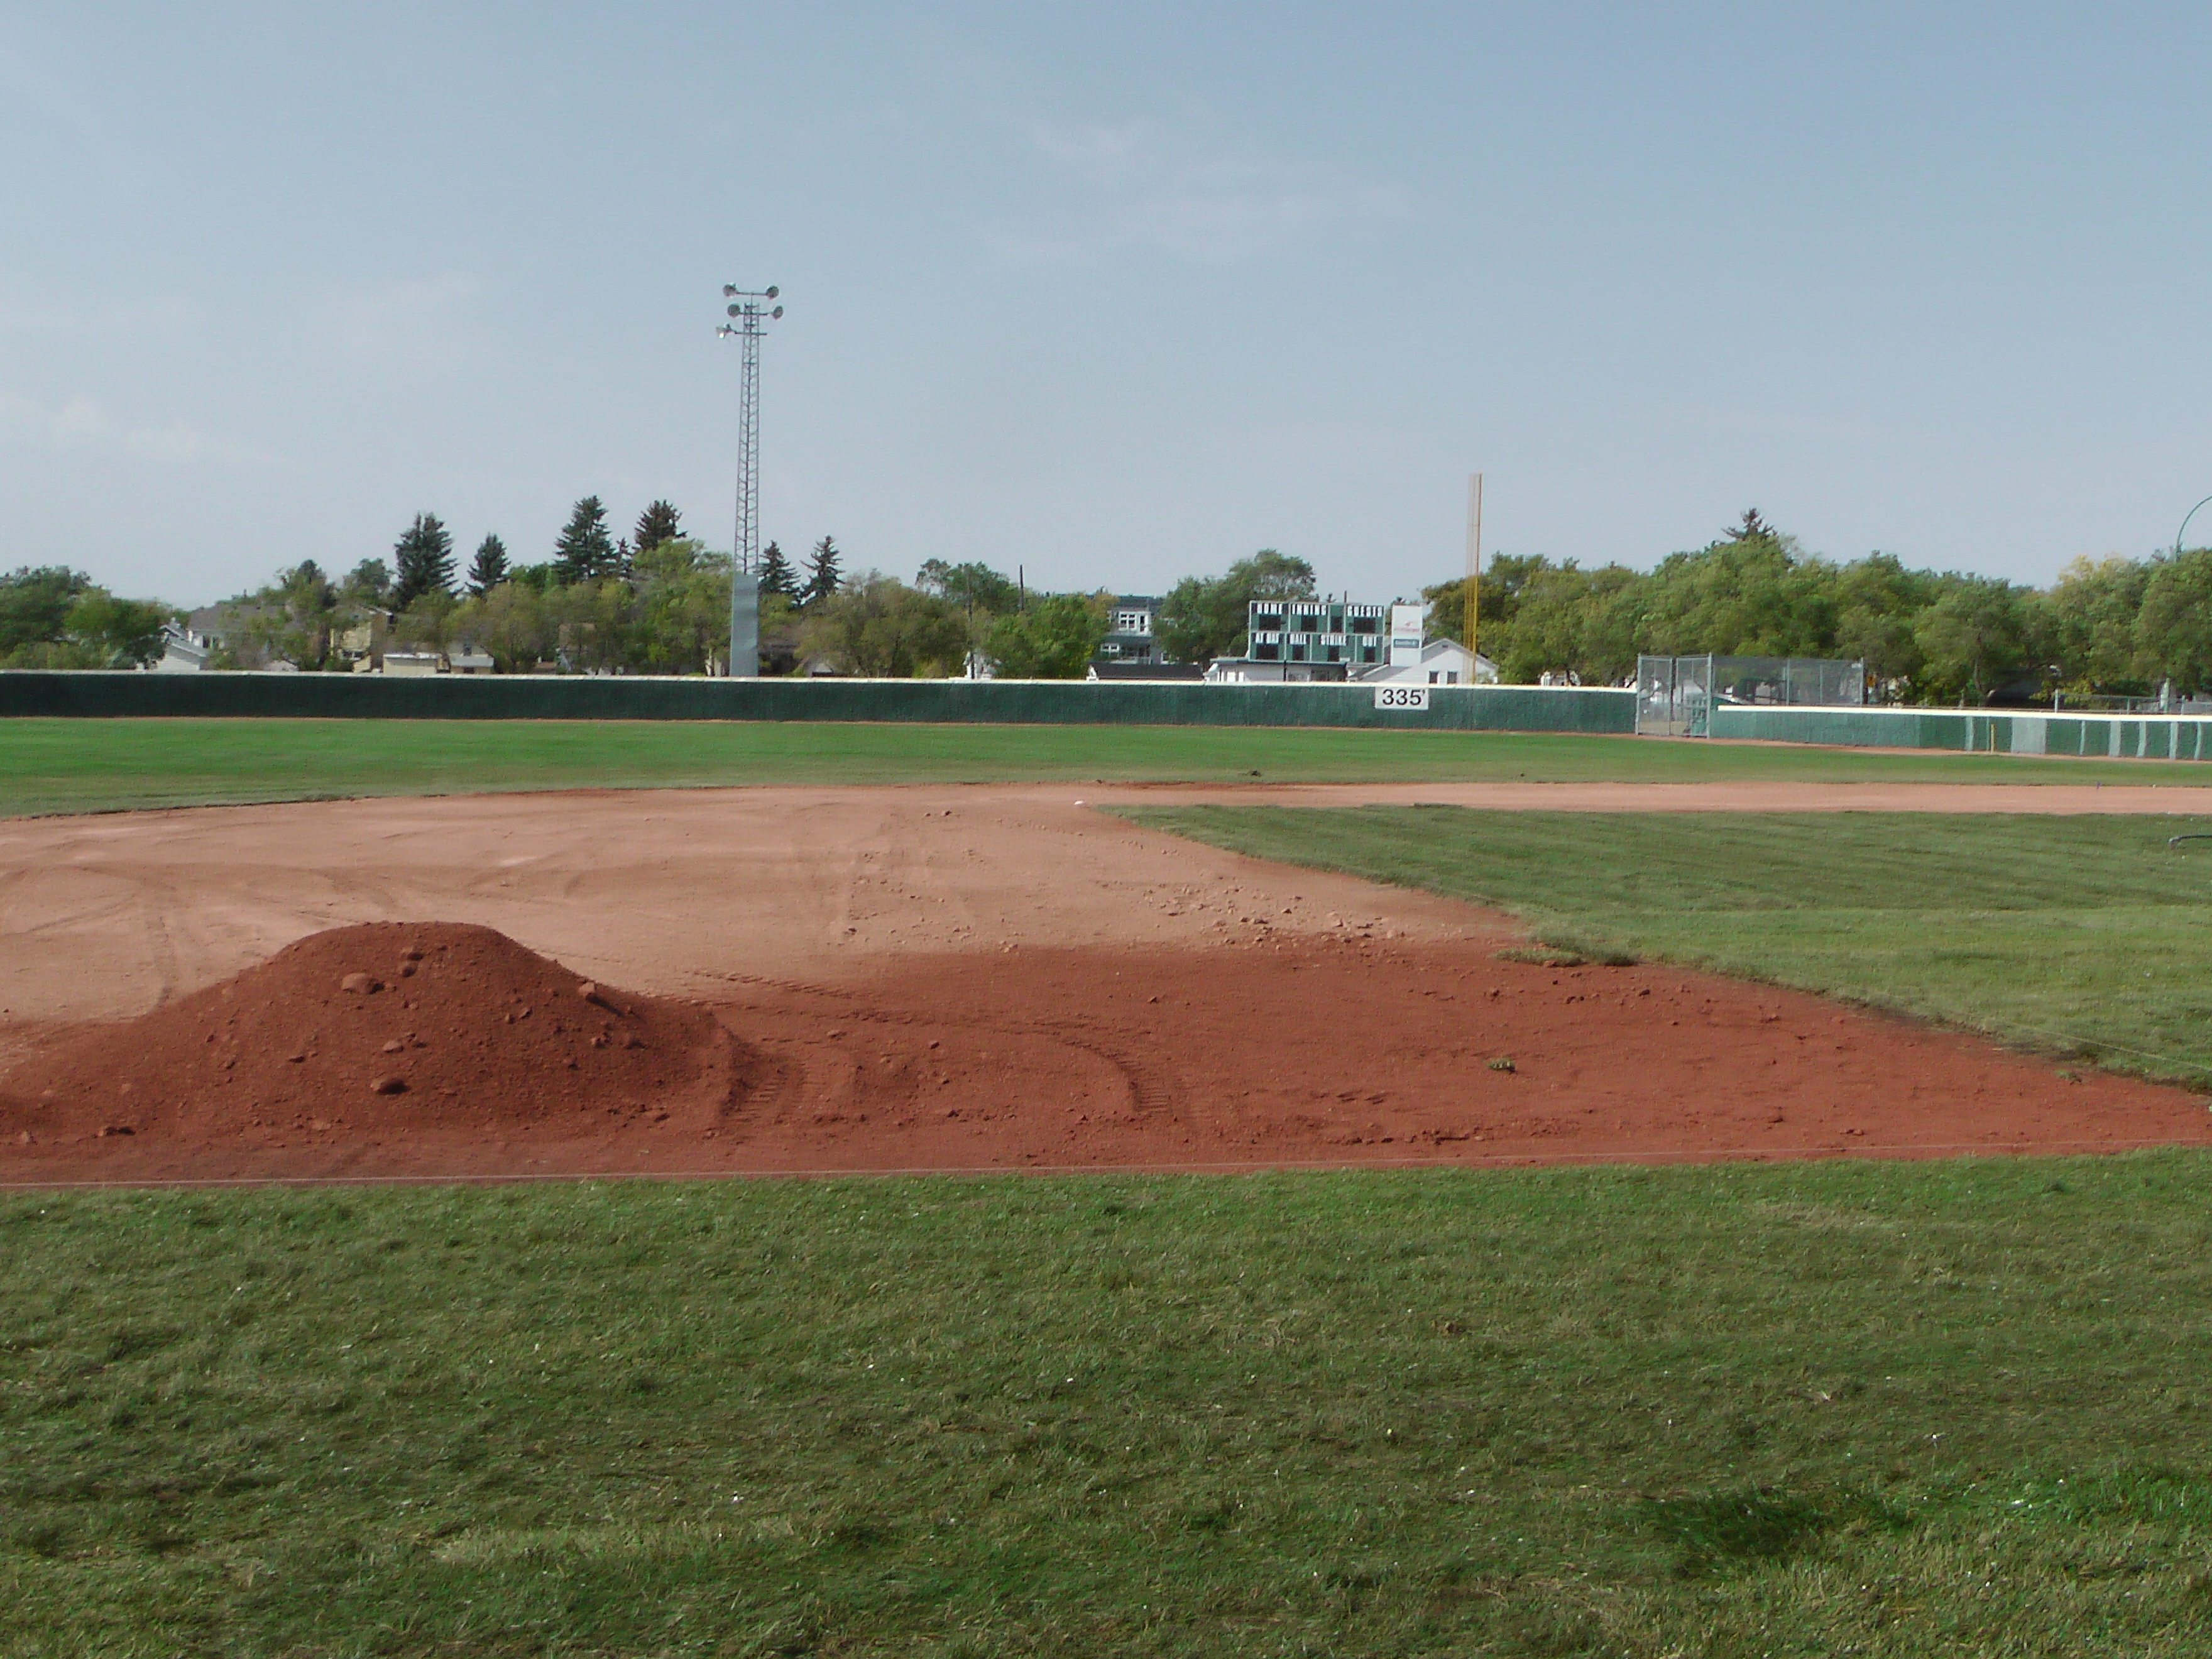 Sept 7 & 8 2018, Optimist Park Field Renovations, sod down being watered - Image 3